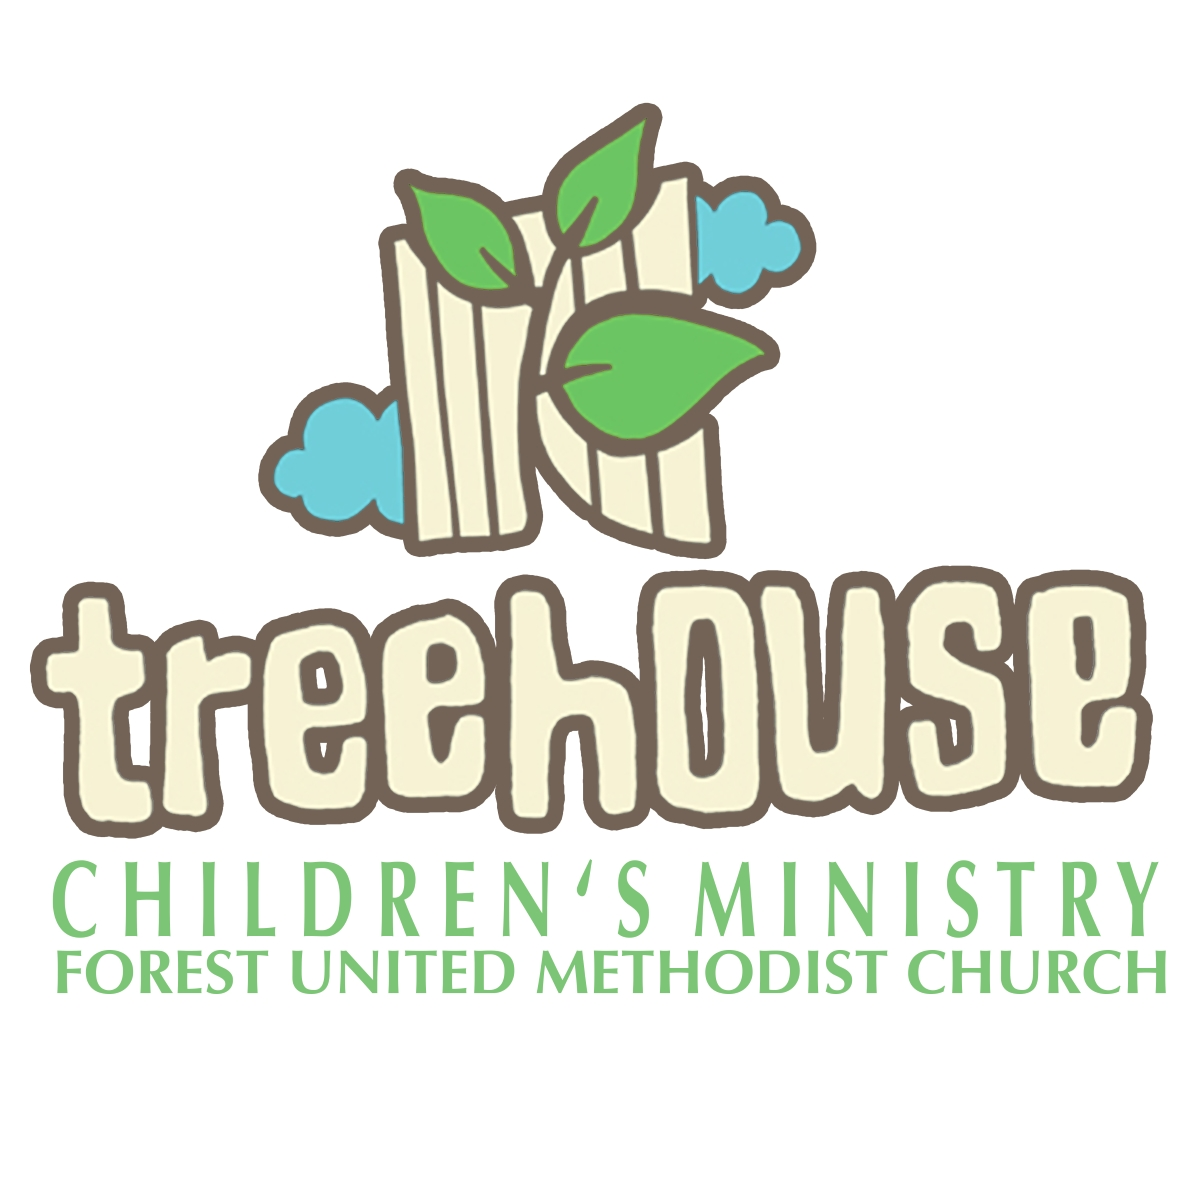 Forest UMC Treehouse Children's Ministry